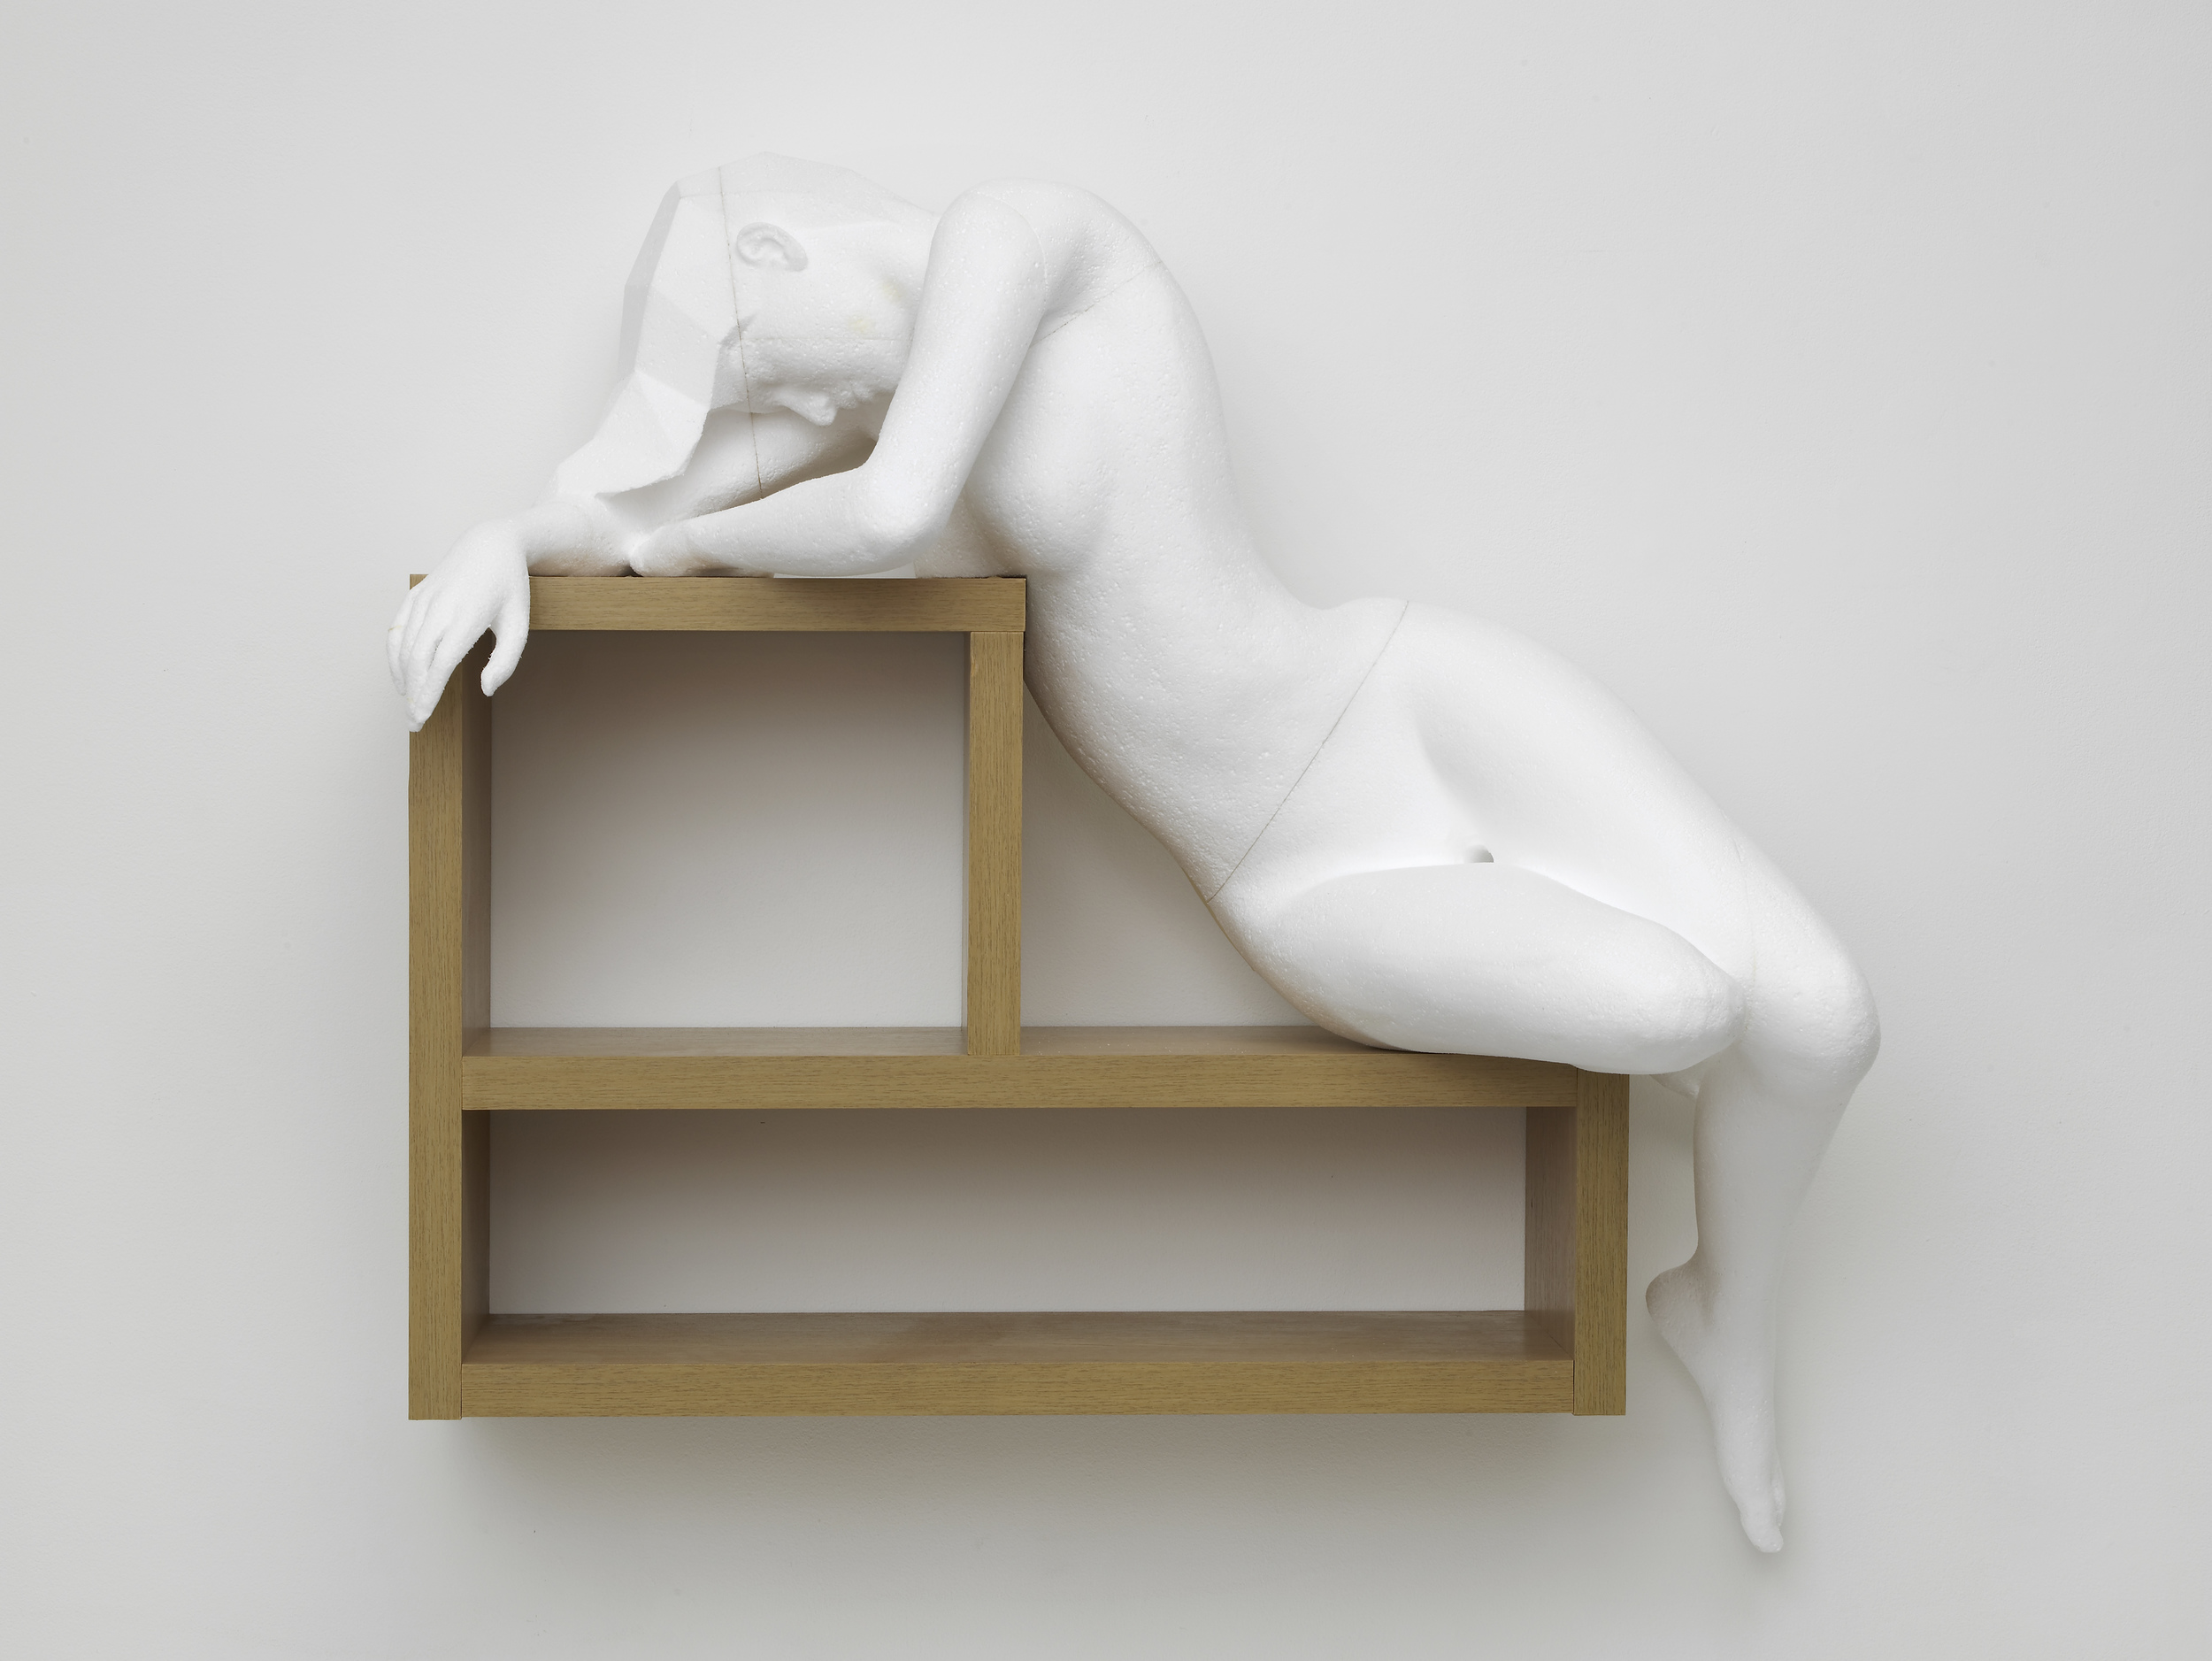 Standardised Form No.4 (nude) 2013 3D model in polystyrene on artificial wood support 107 x 104.4 x 54 cm / 42.1 x 41.1 x 21.2 in